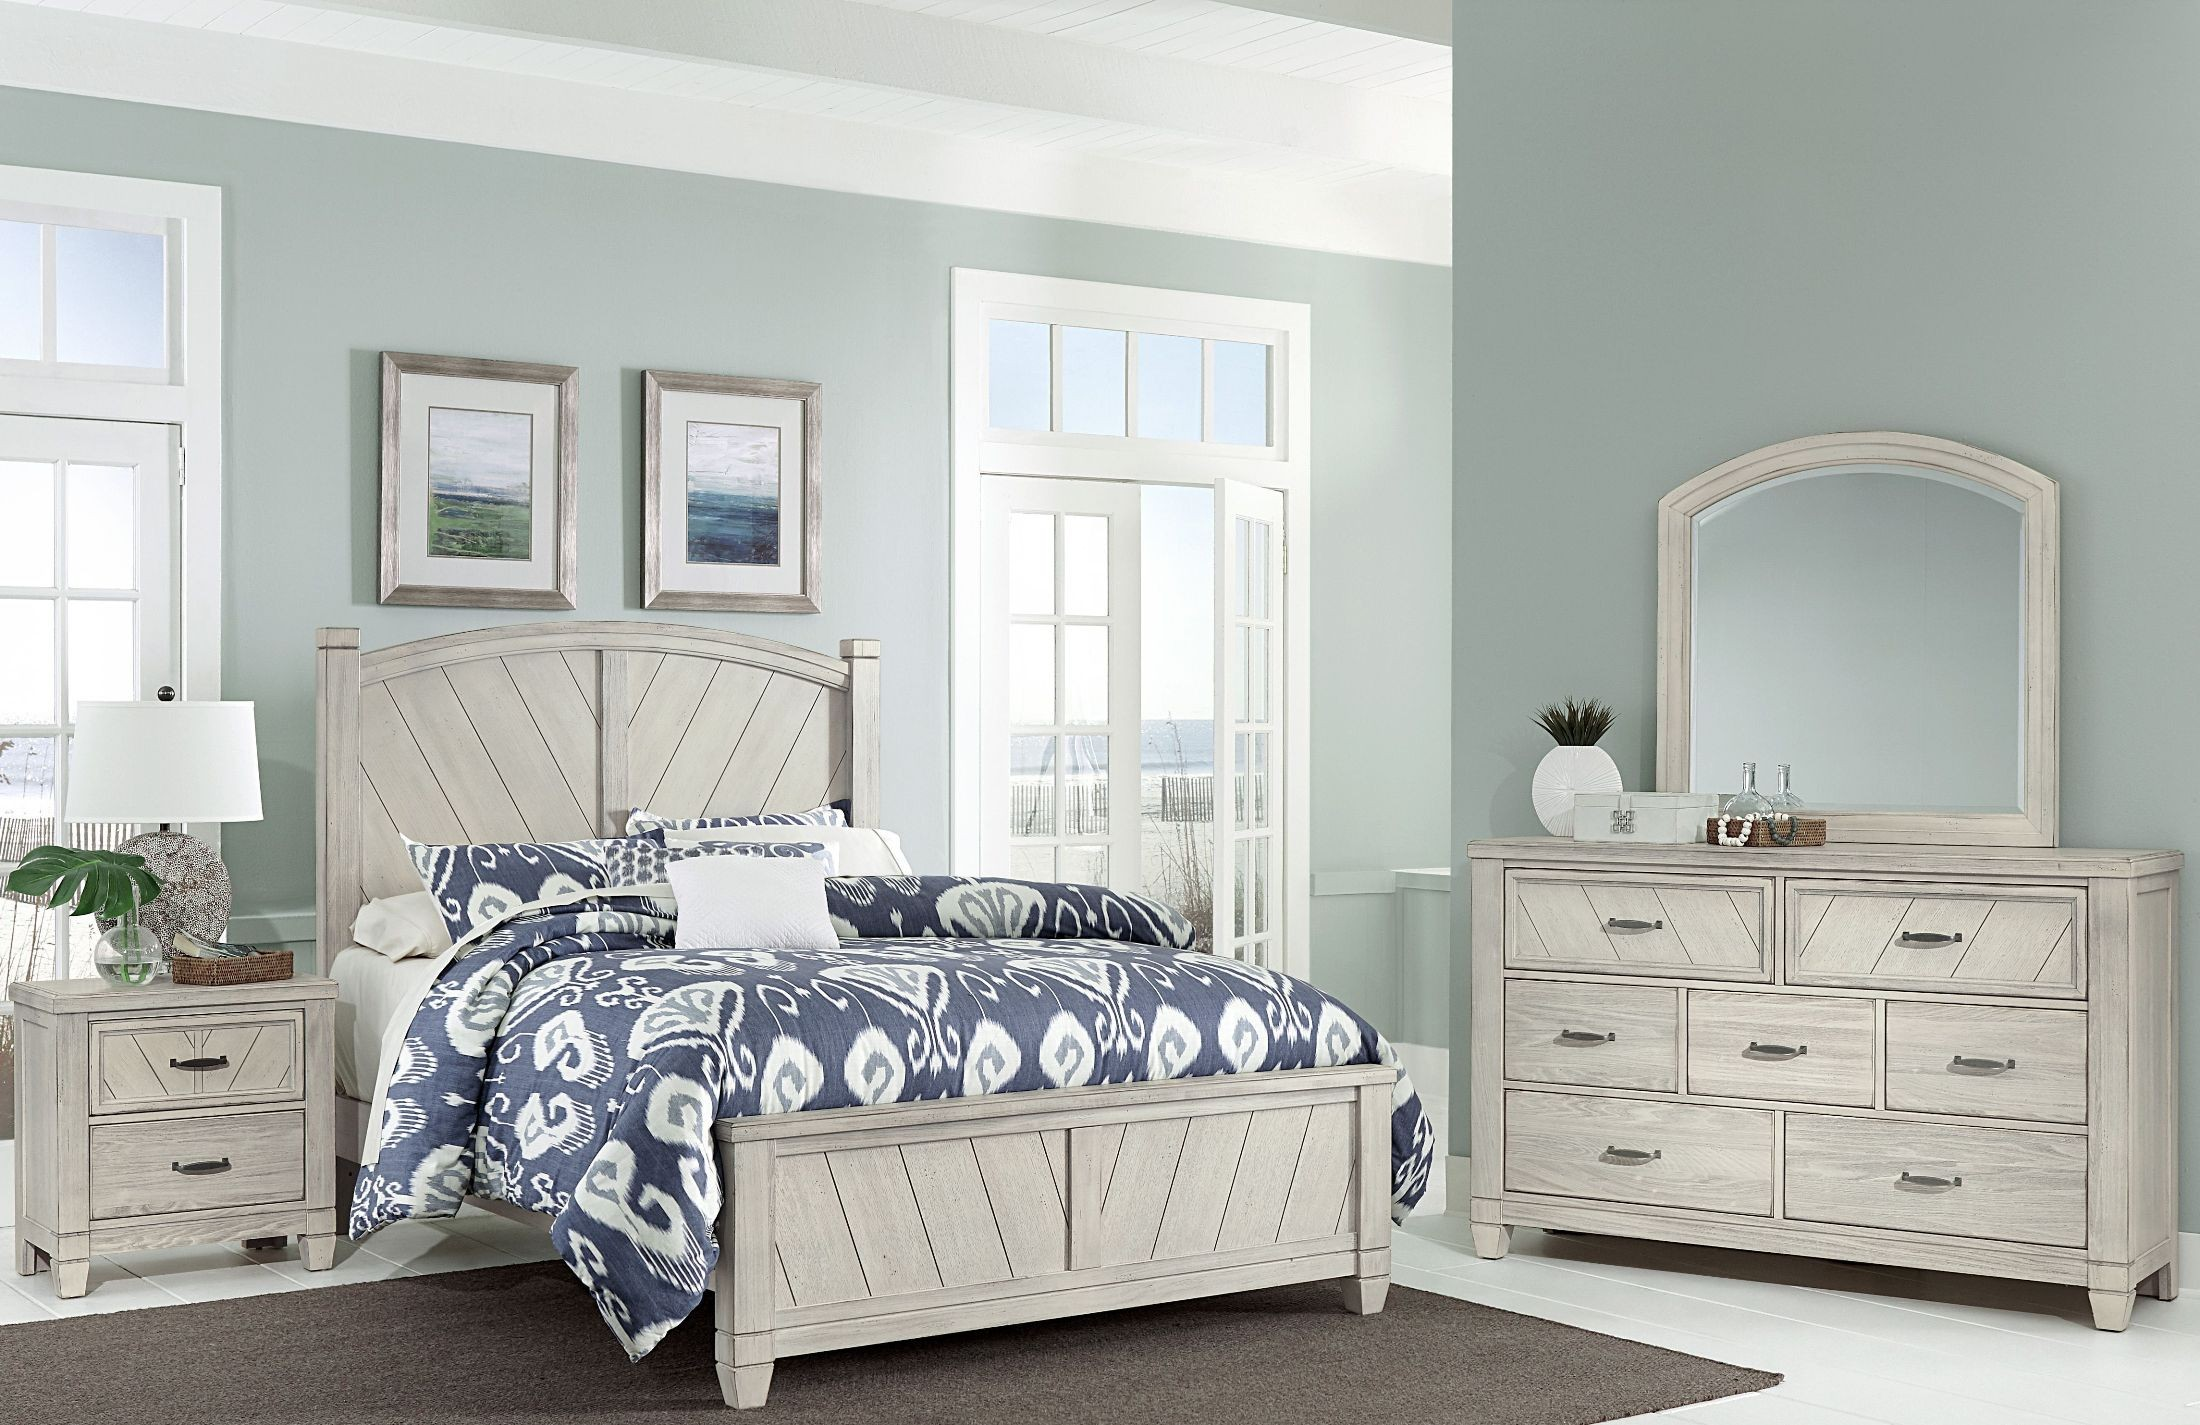 Rustic Cottage Rustic White Panel Bedroom Set From Virginia House Coleman Furniture